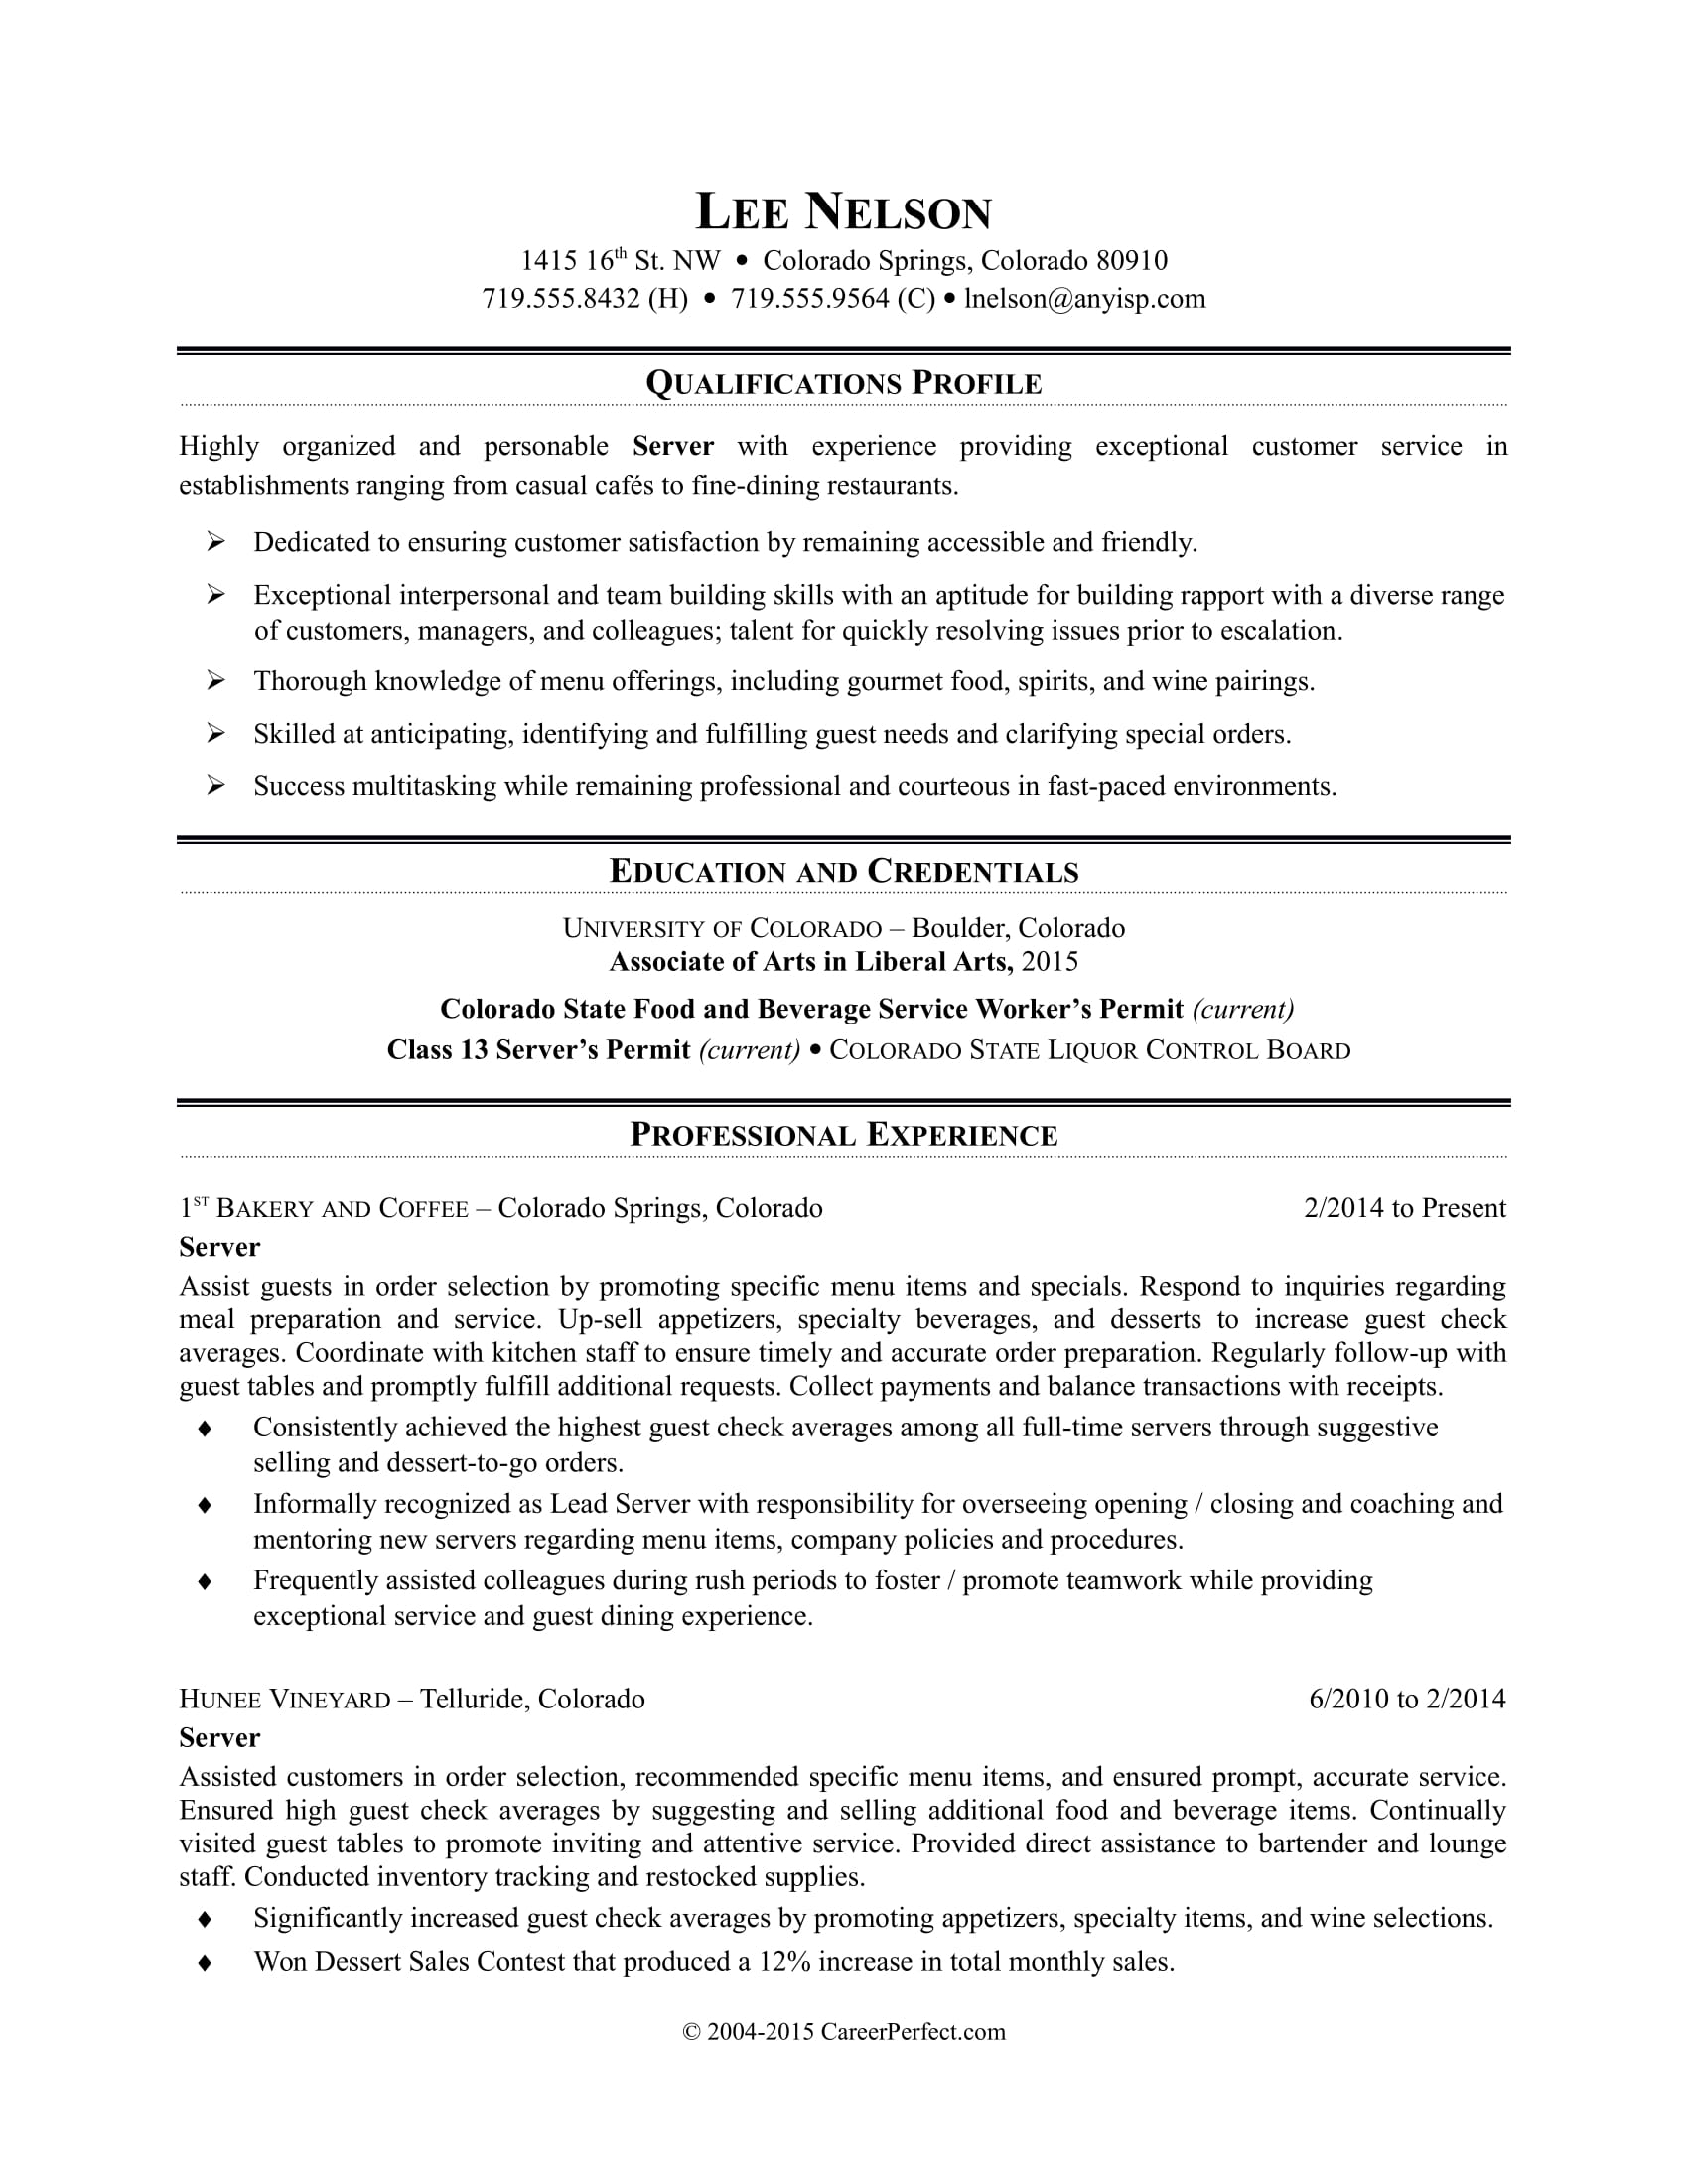 Sample Resume for a Restaurant Server